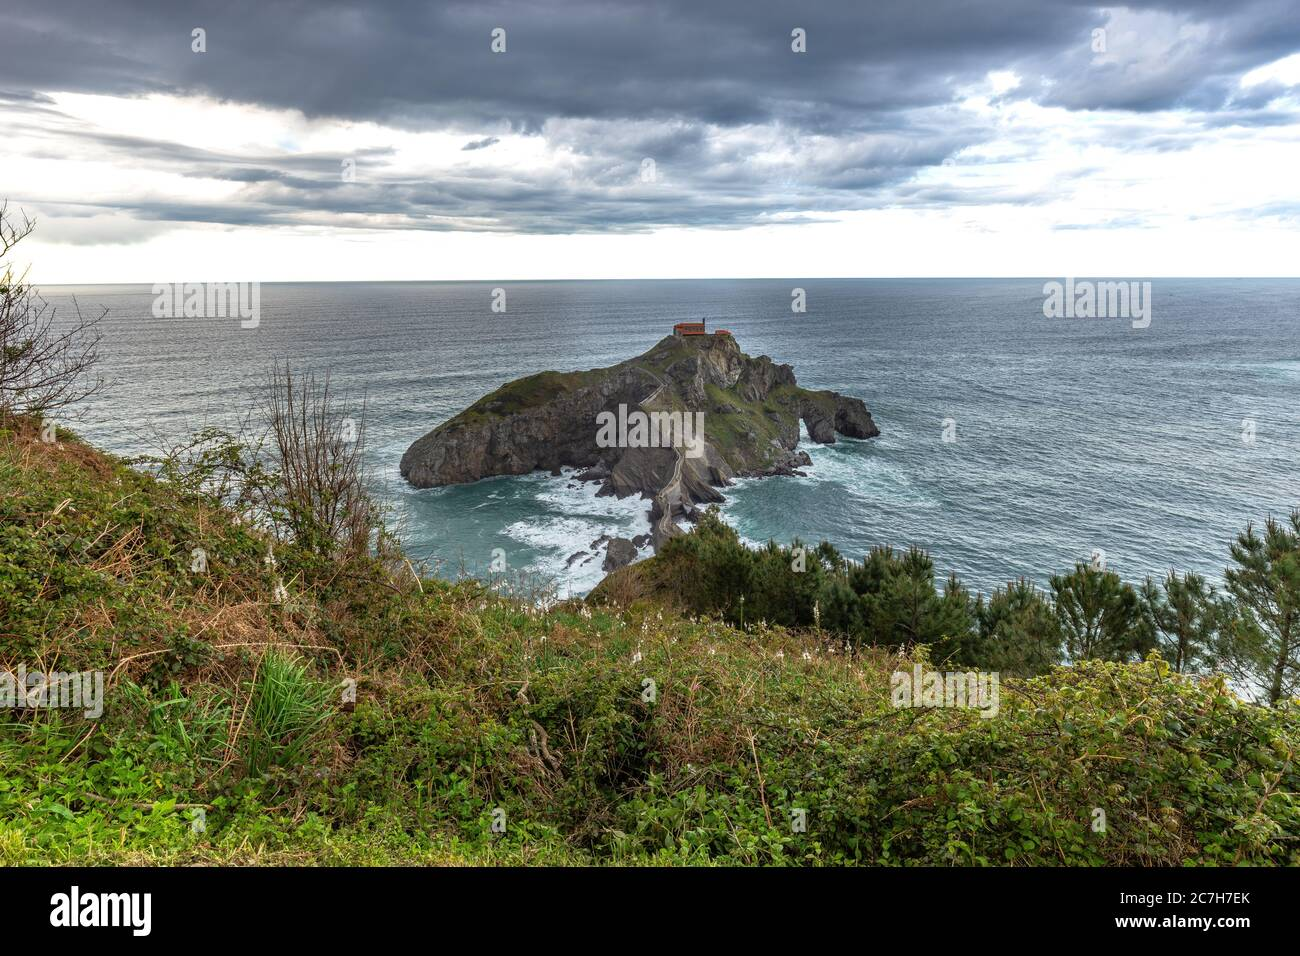 Europe, Spain, Basque Country, Biscay, Bay of Biscay, Costa Vasca, view of Gaztelugatxe Stock Photo